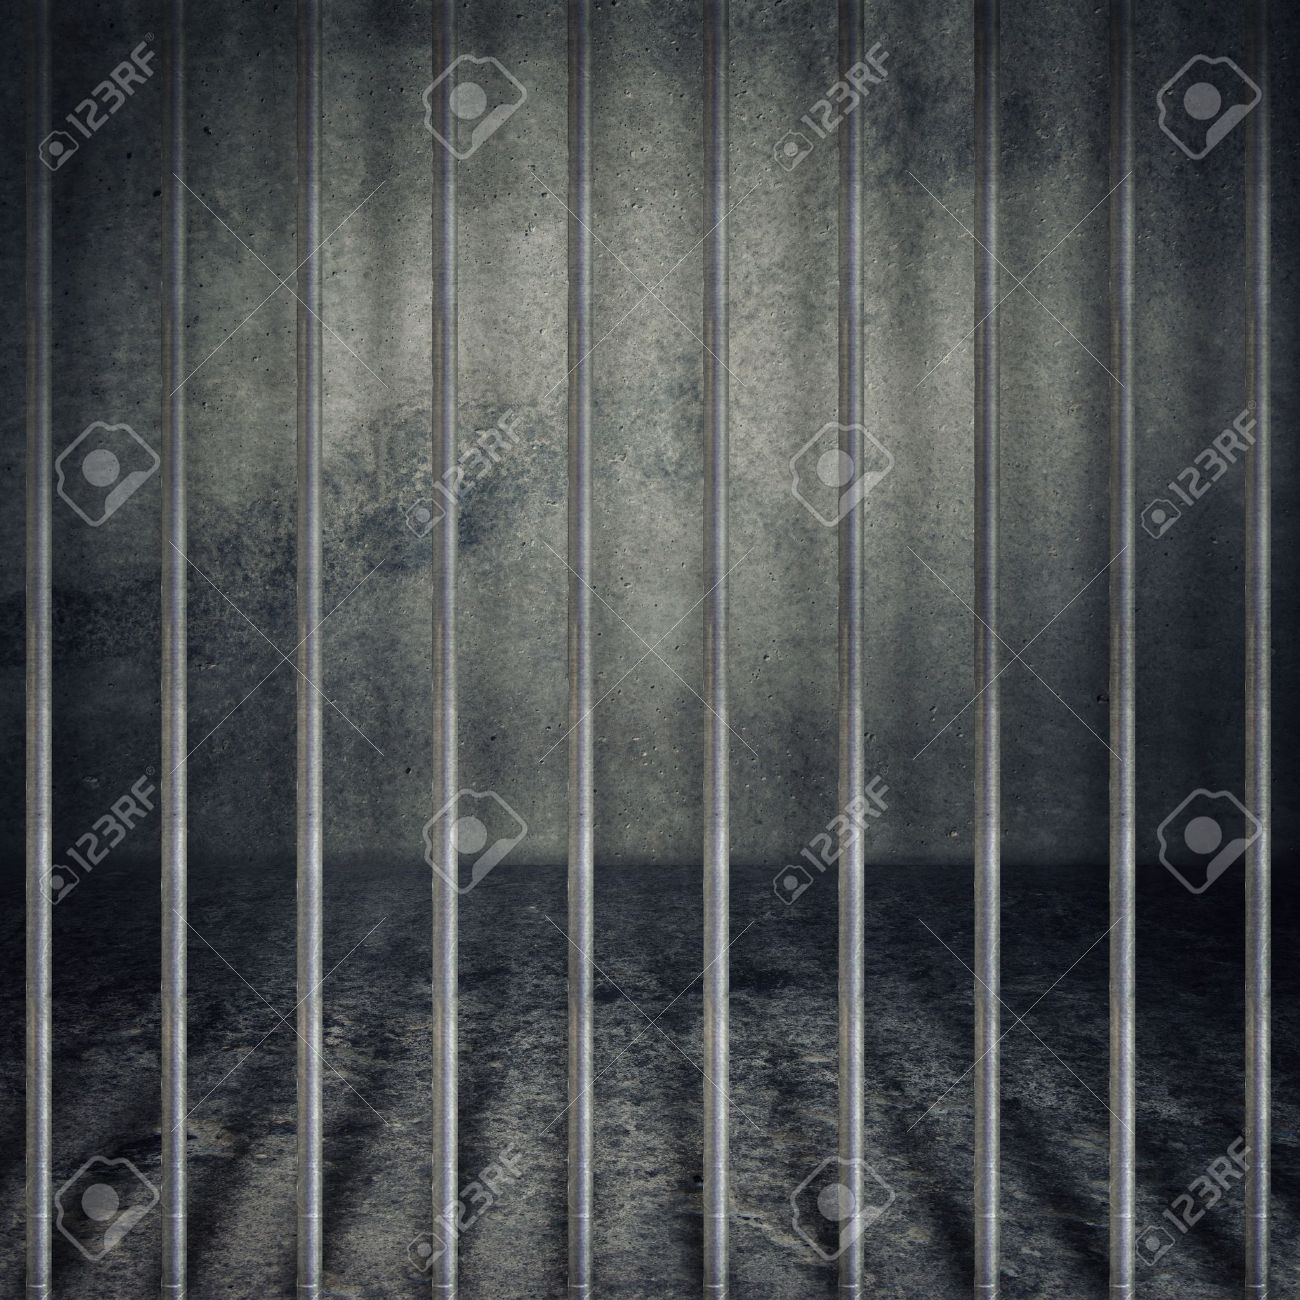 Obsolete gray grunge concrete room, prison cell with metal bars. Stock Photo - 14792263